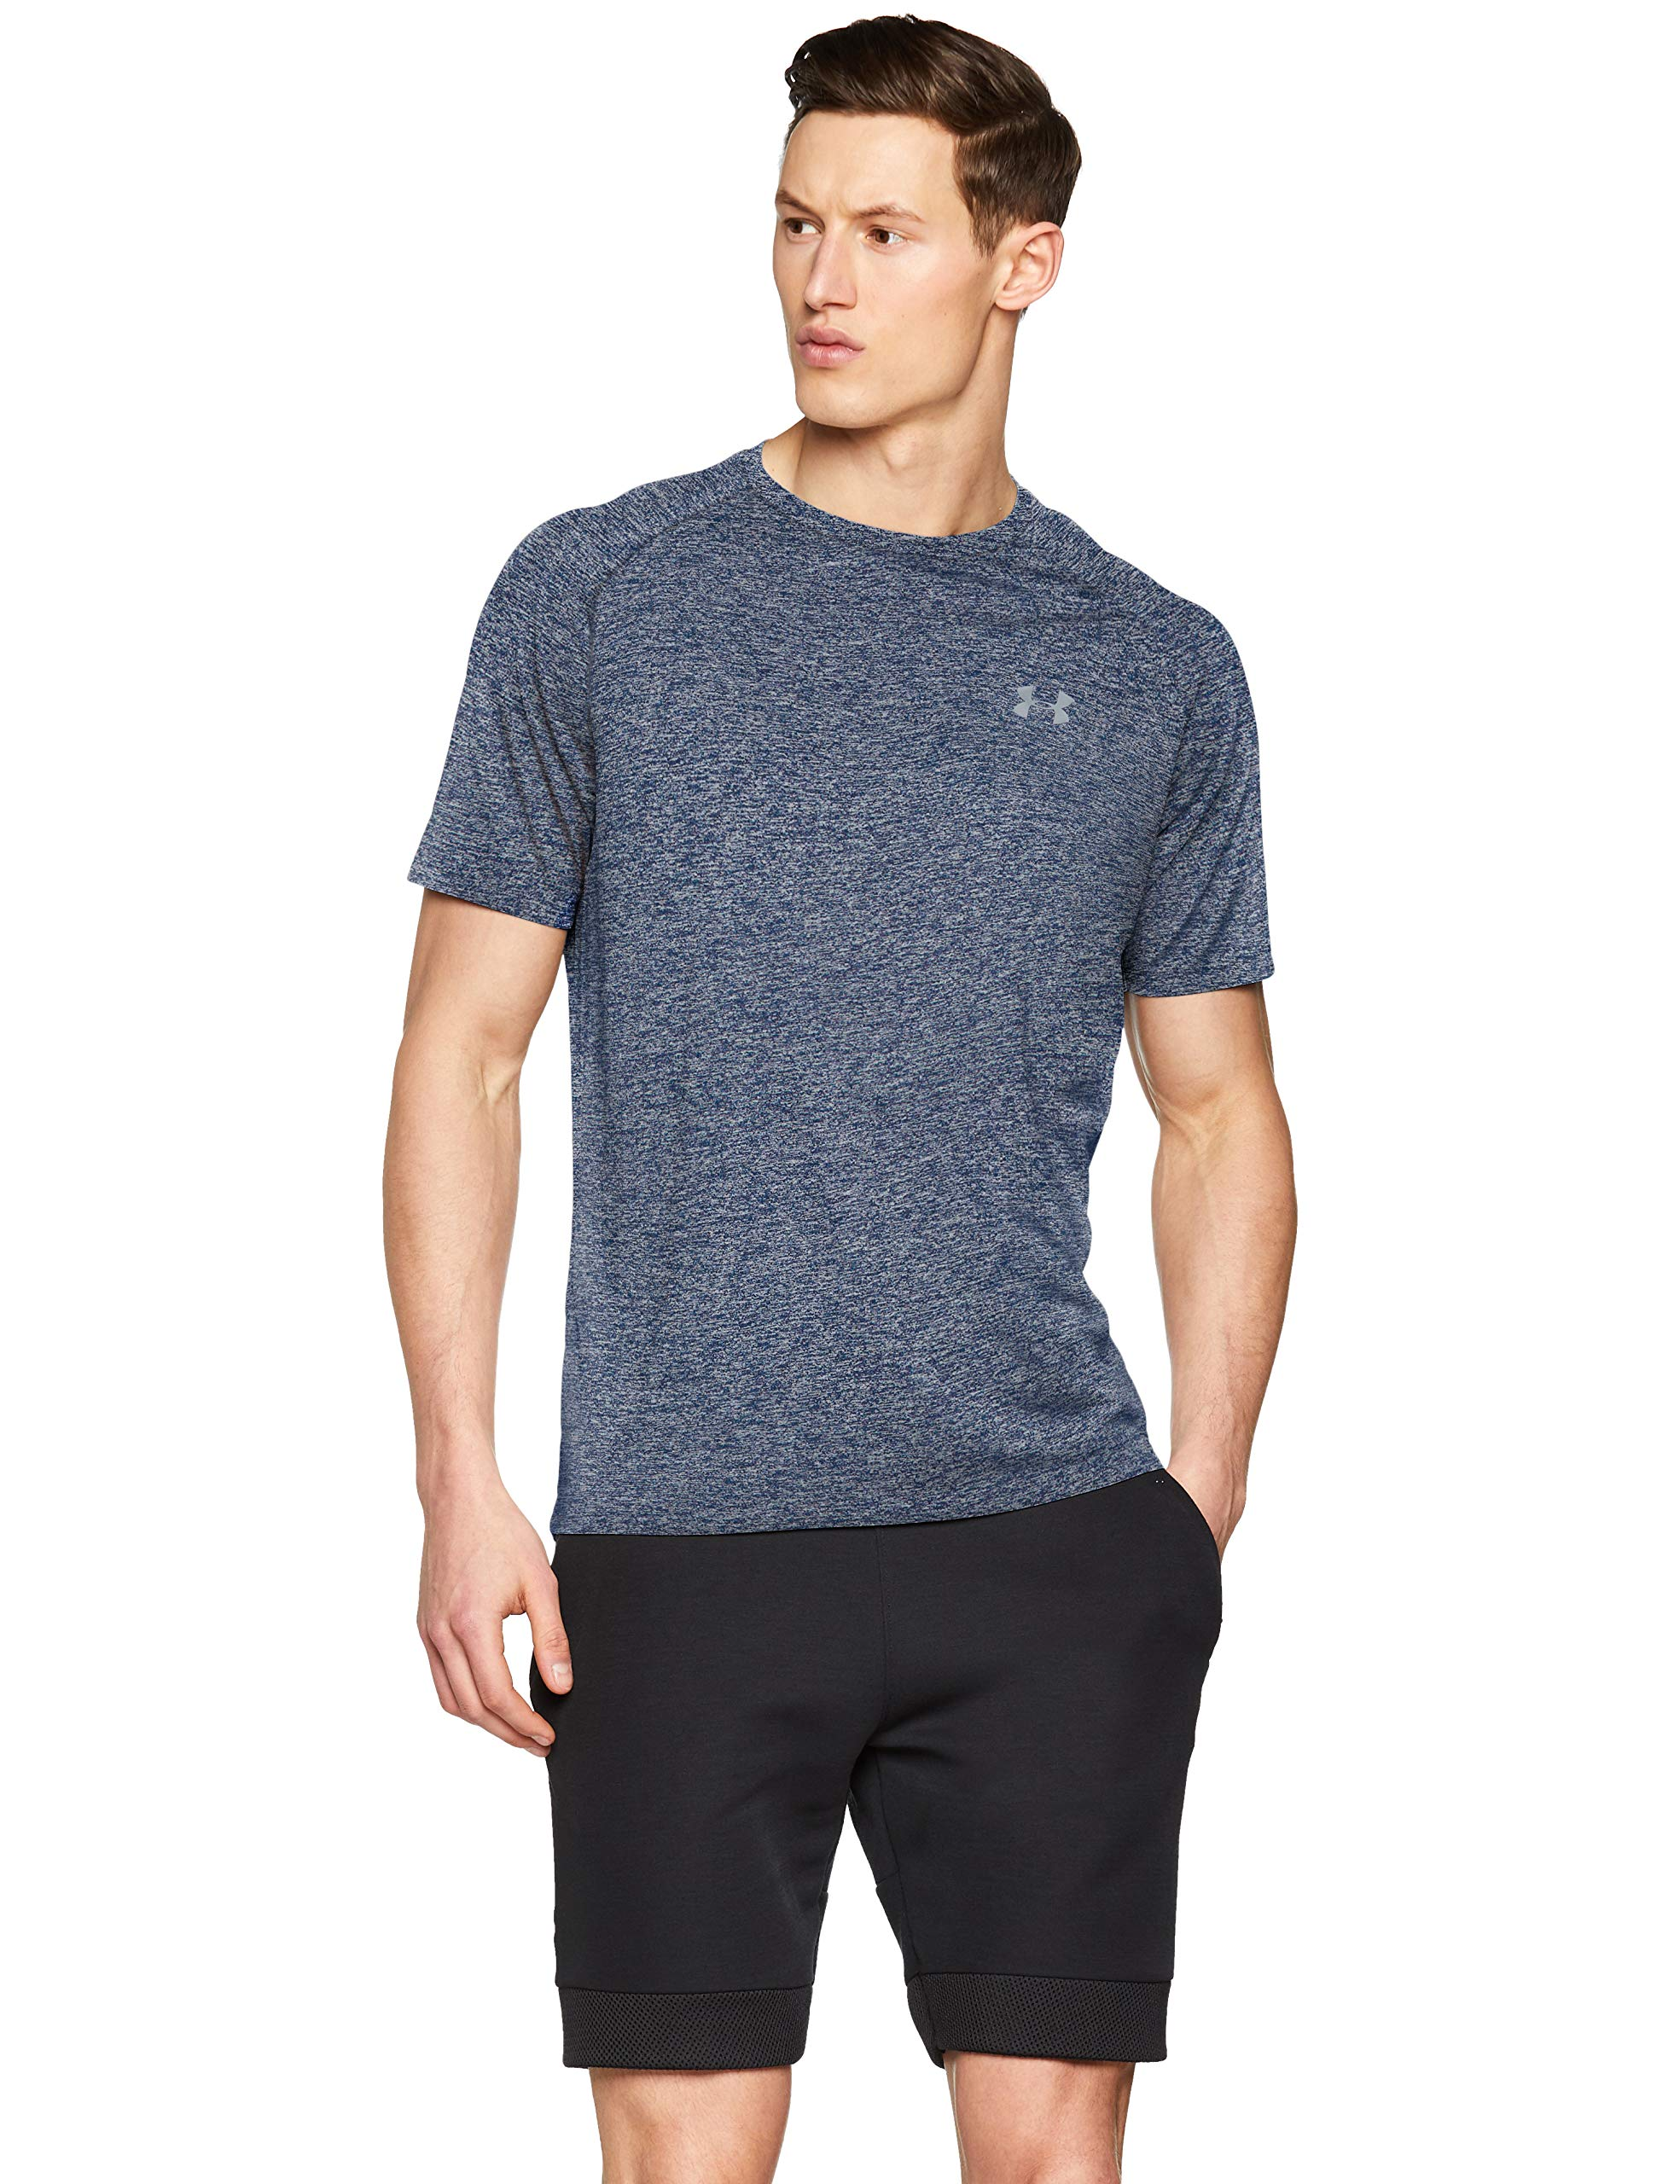 Under Armour Men's UA Tech Short Sleeve Tee 2.0, Academy, XS-R